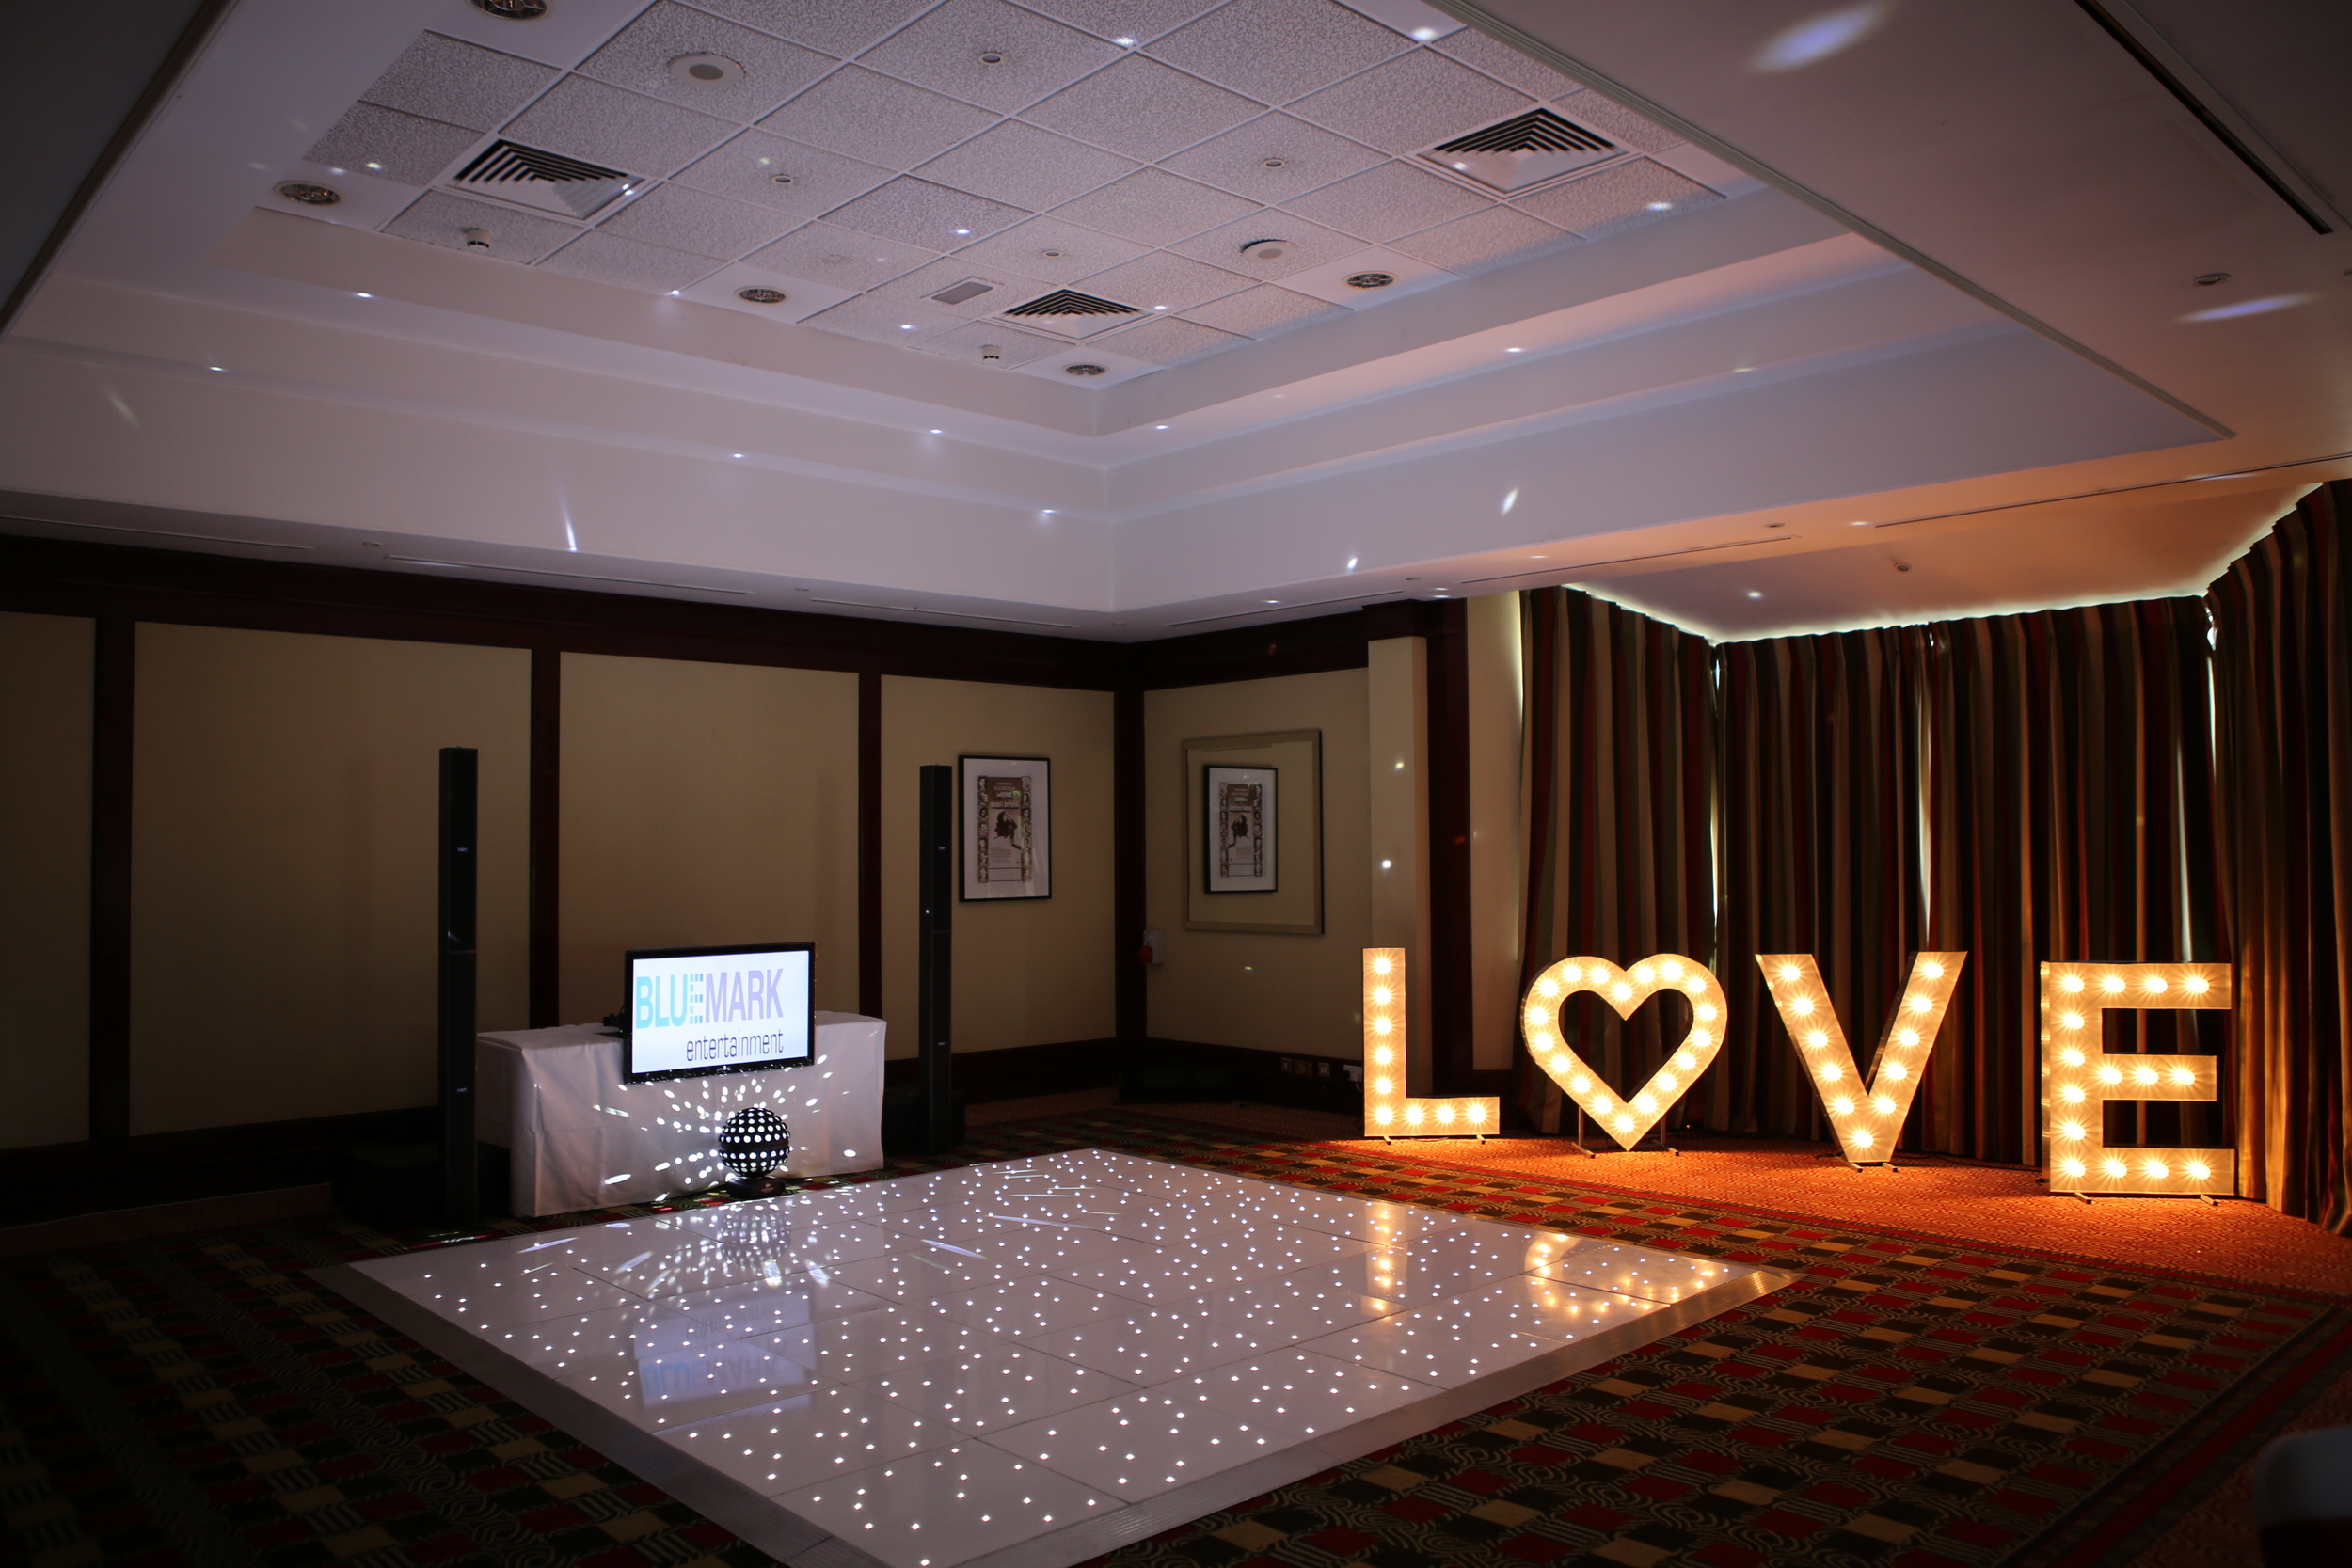 Awesome hertsweddindj with video scree, starlit LED dance floor and giant LOVE lettering at The Holiday Inn in Borehamwood. A magical wedding for lovely people